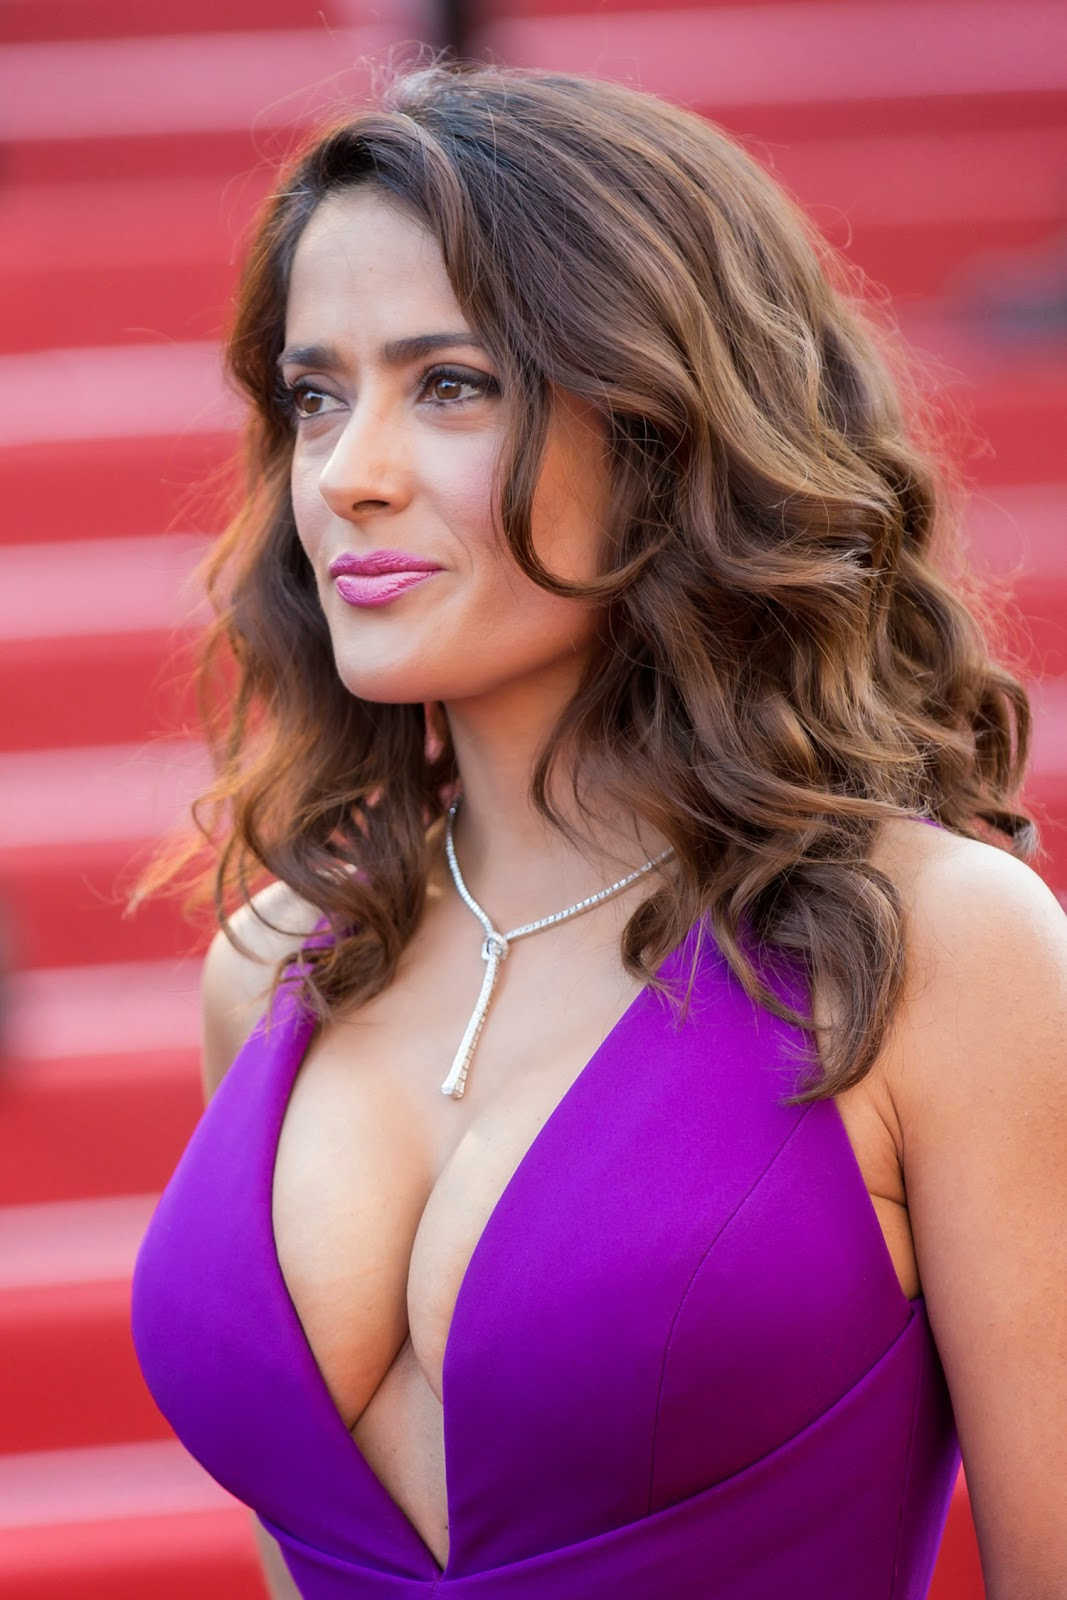 Super Model Salma Hayek Hot Sexy Hd Pics Gallery -7058